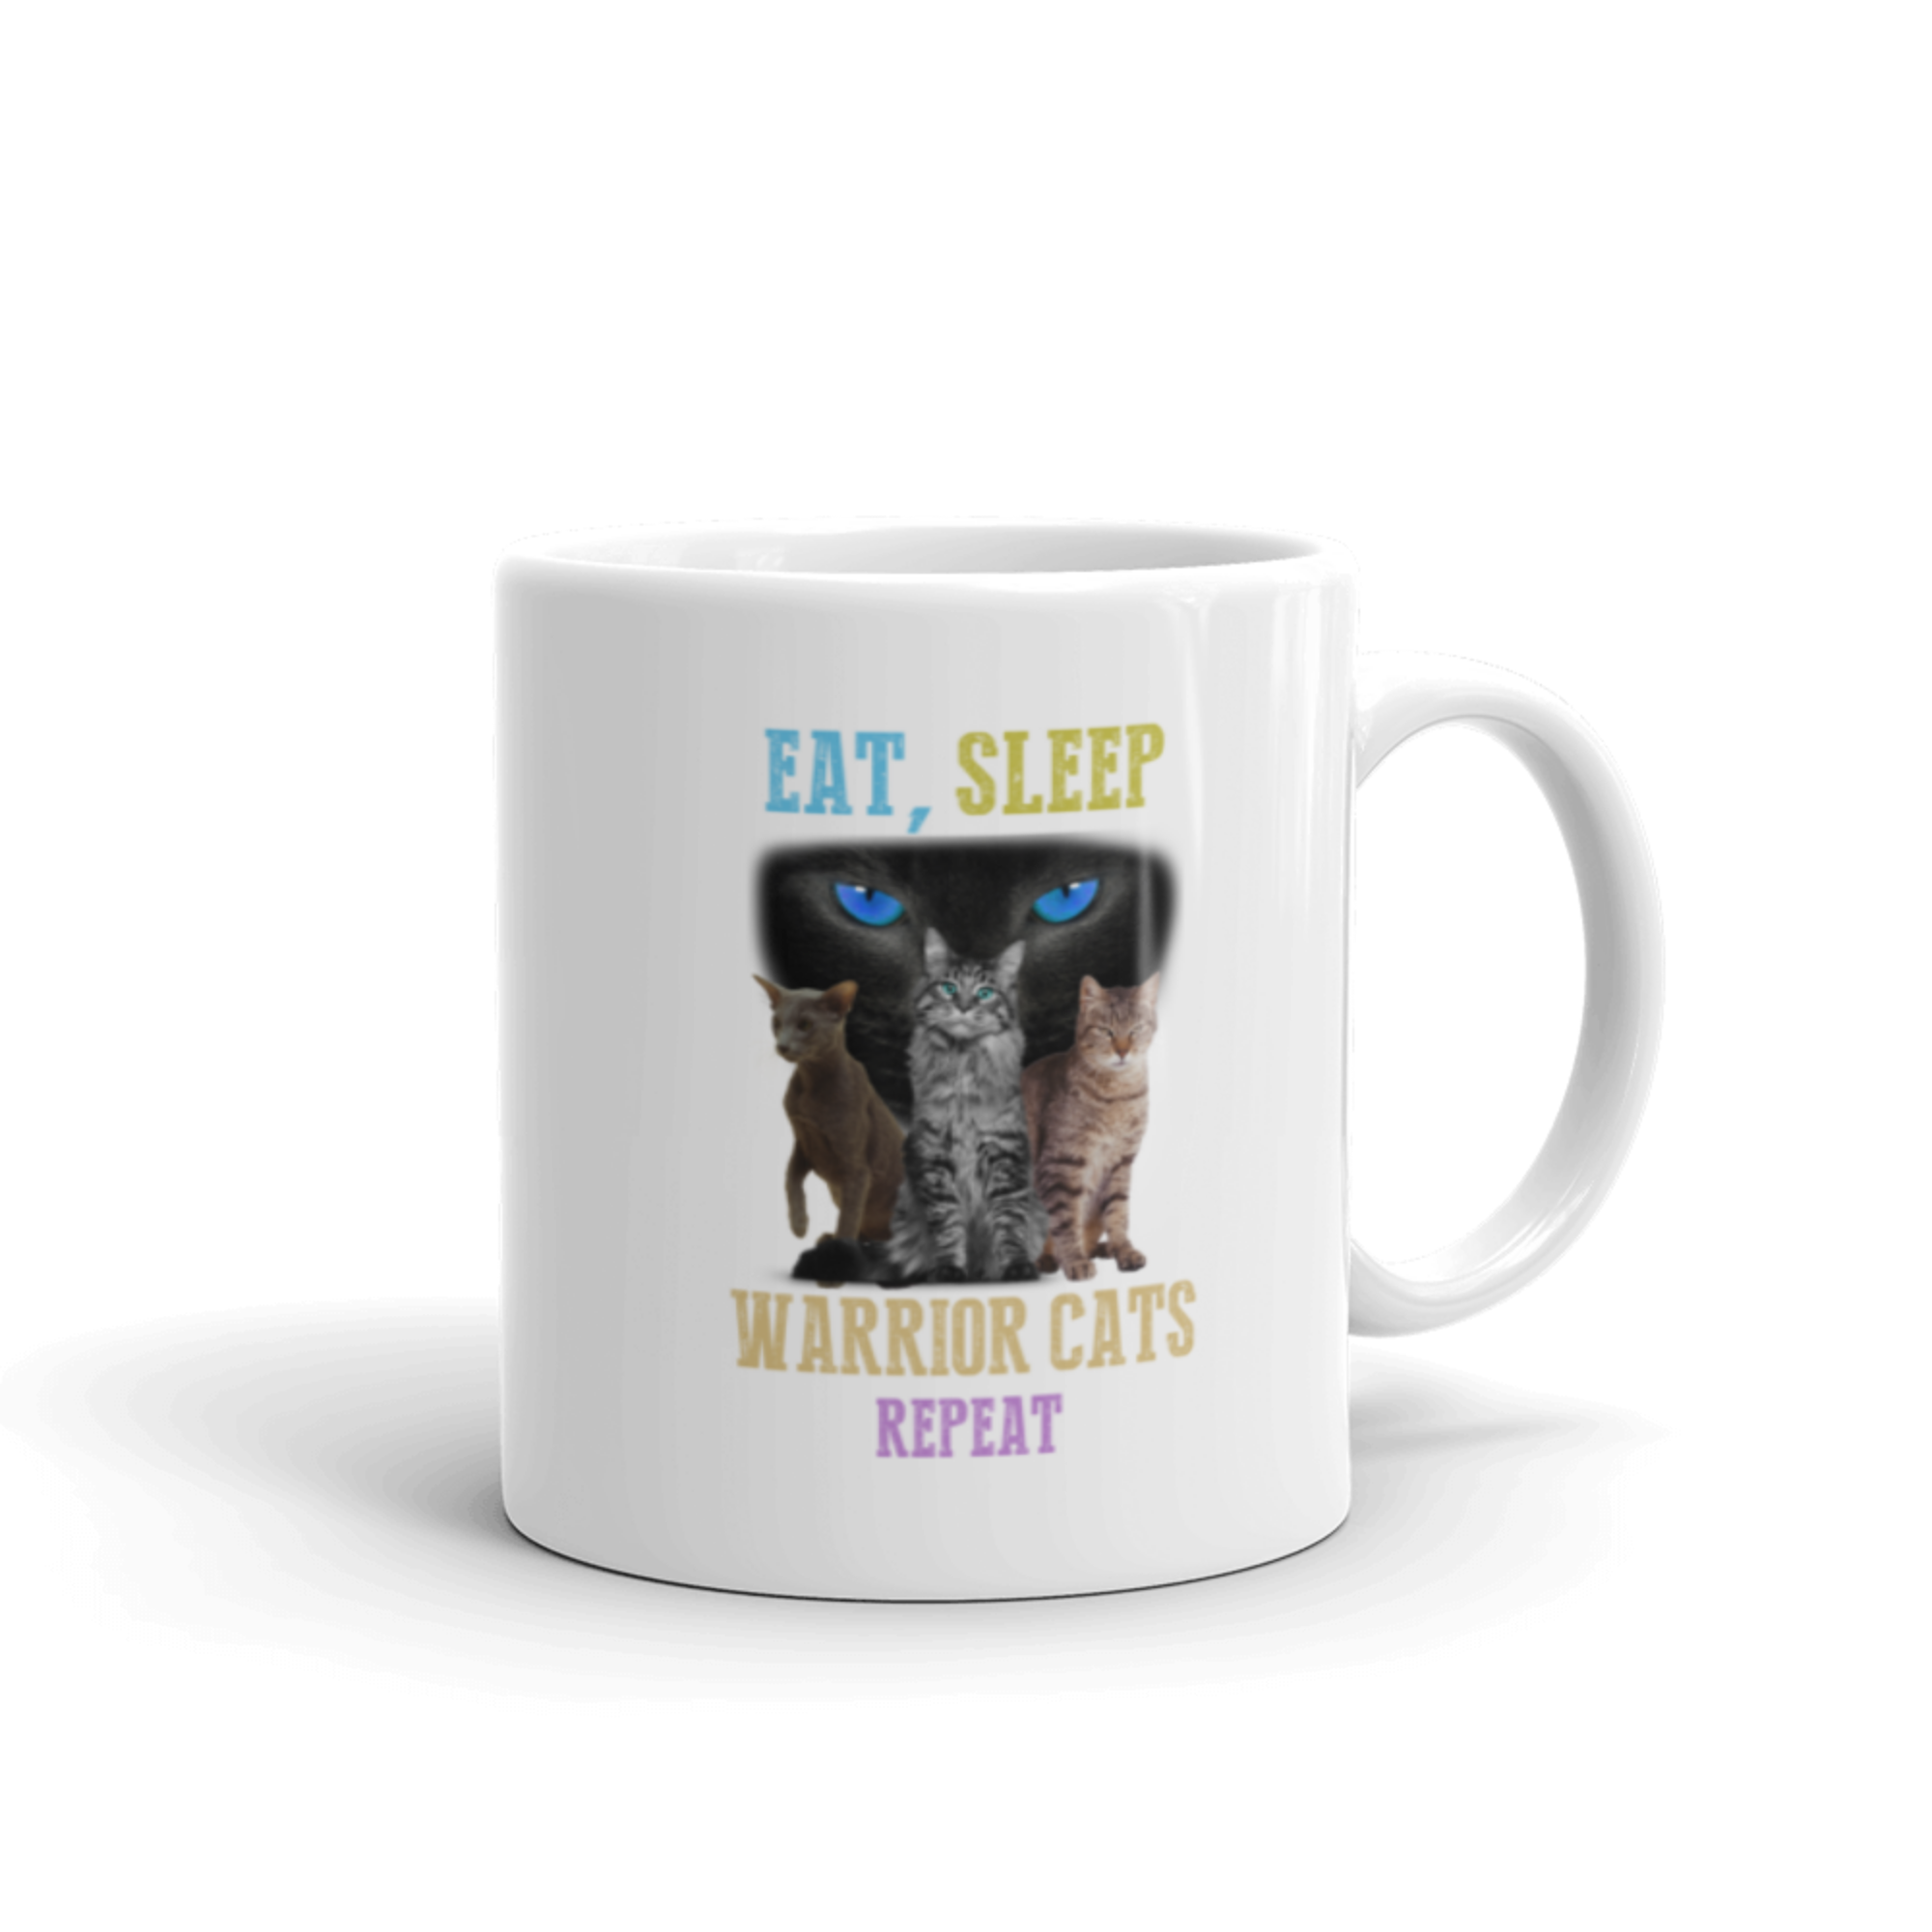 Eat Sleep Warrior Cats Repeat Cat Dog Pet Lover Gift Coffee Mug 11 oz